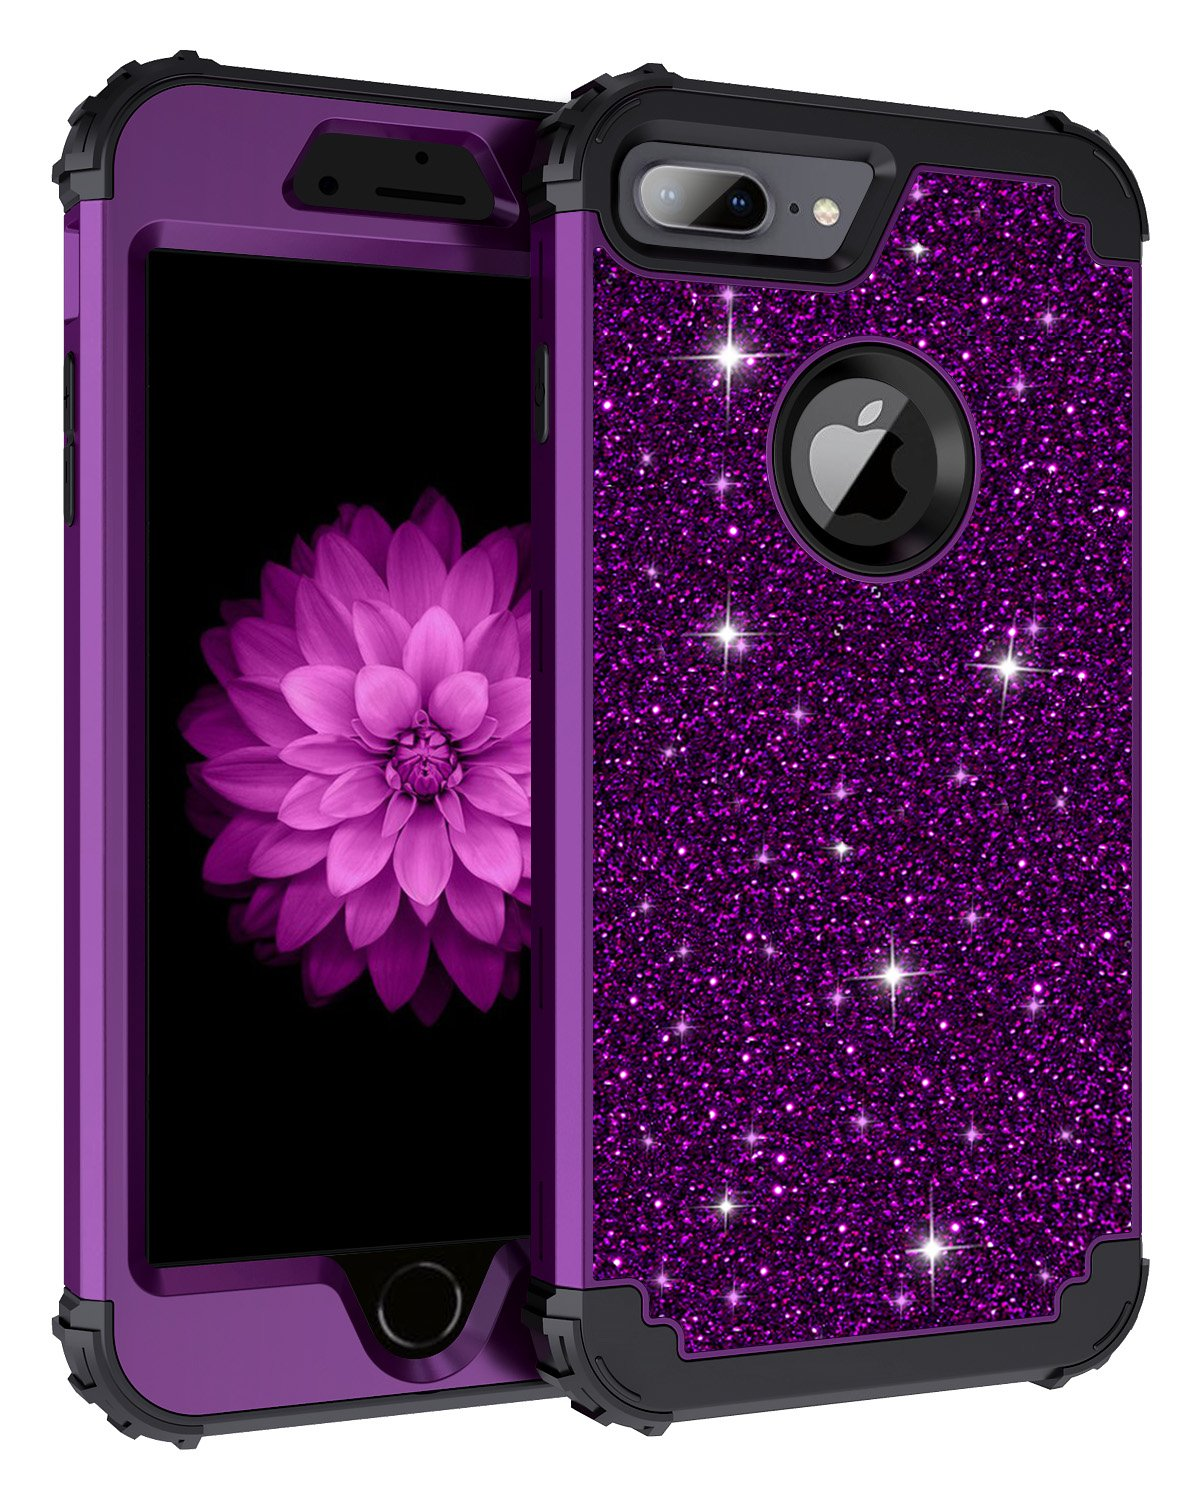 Lontect Compatible iPhone 8 Plus Case Glitter Sparkle Bling Heavy Duty Hybrid Sturdy Armor Defender High Impact Shockproof Protective Cover Case for Apple iPhone 8 Plus/7 Plus, Shiny Purple/Black